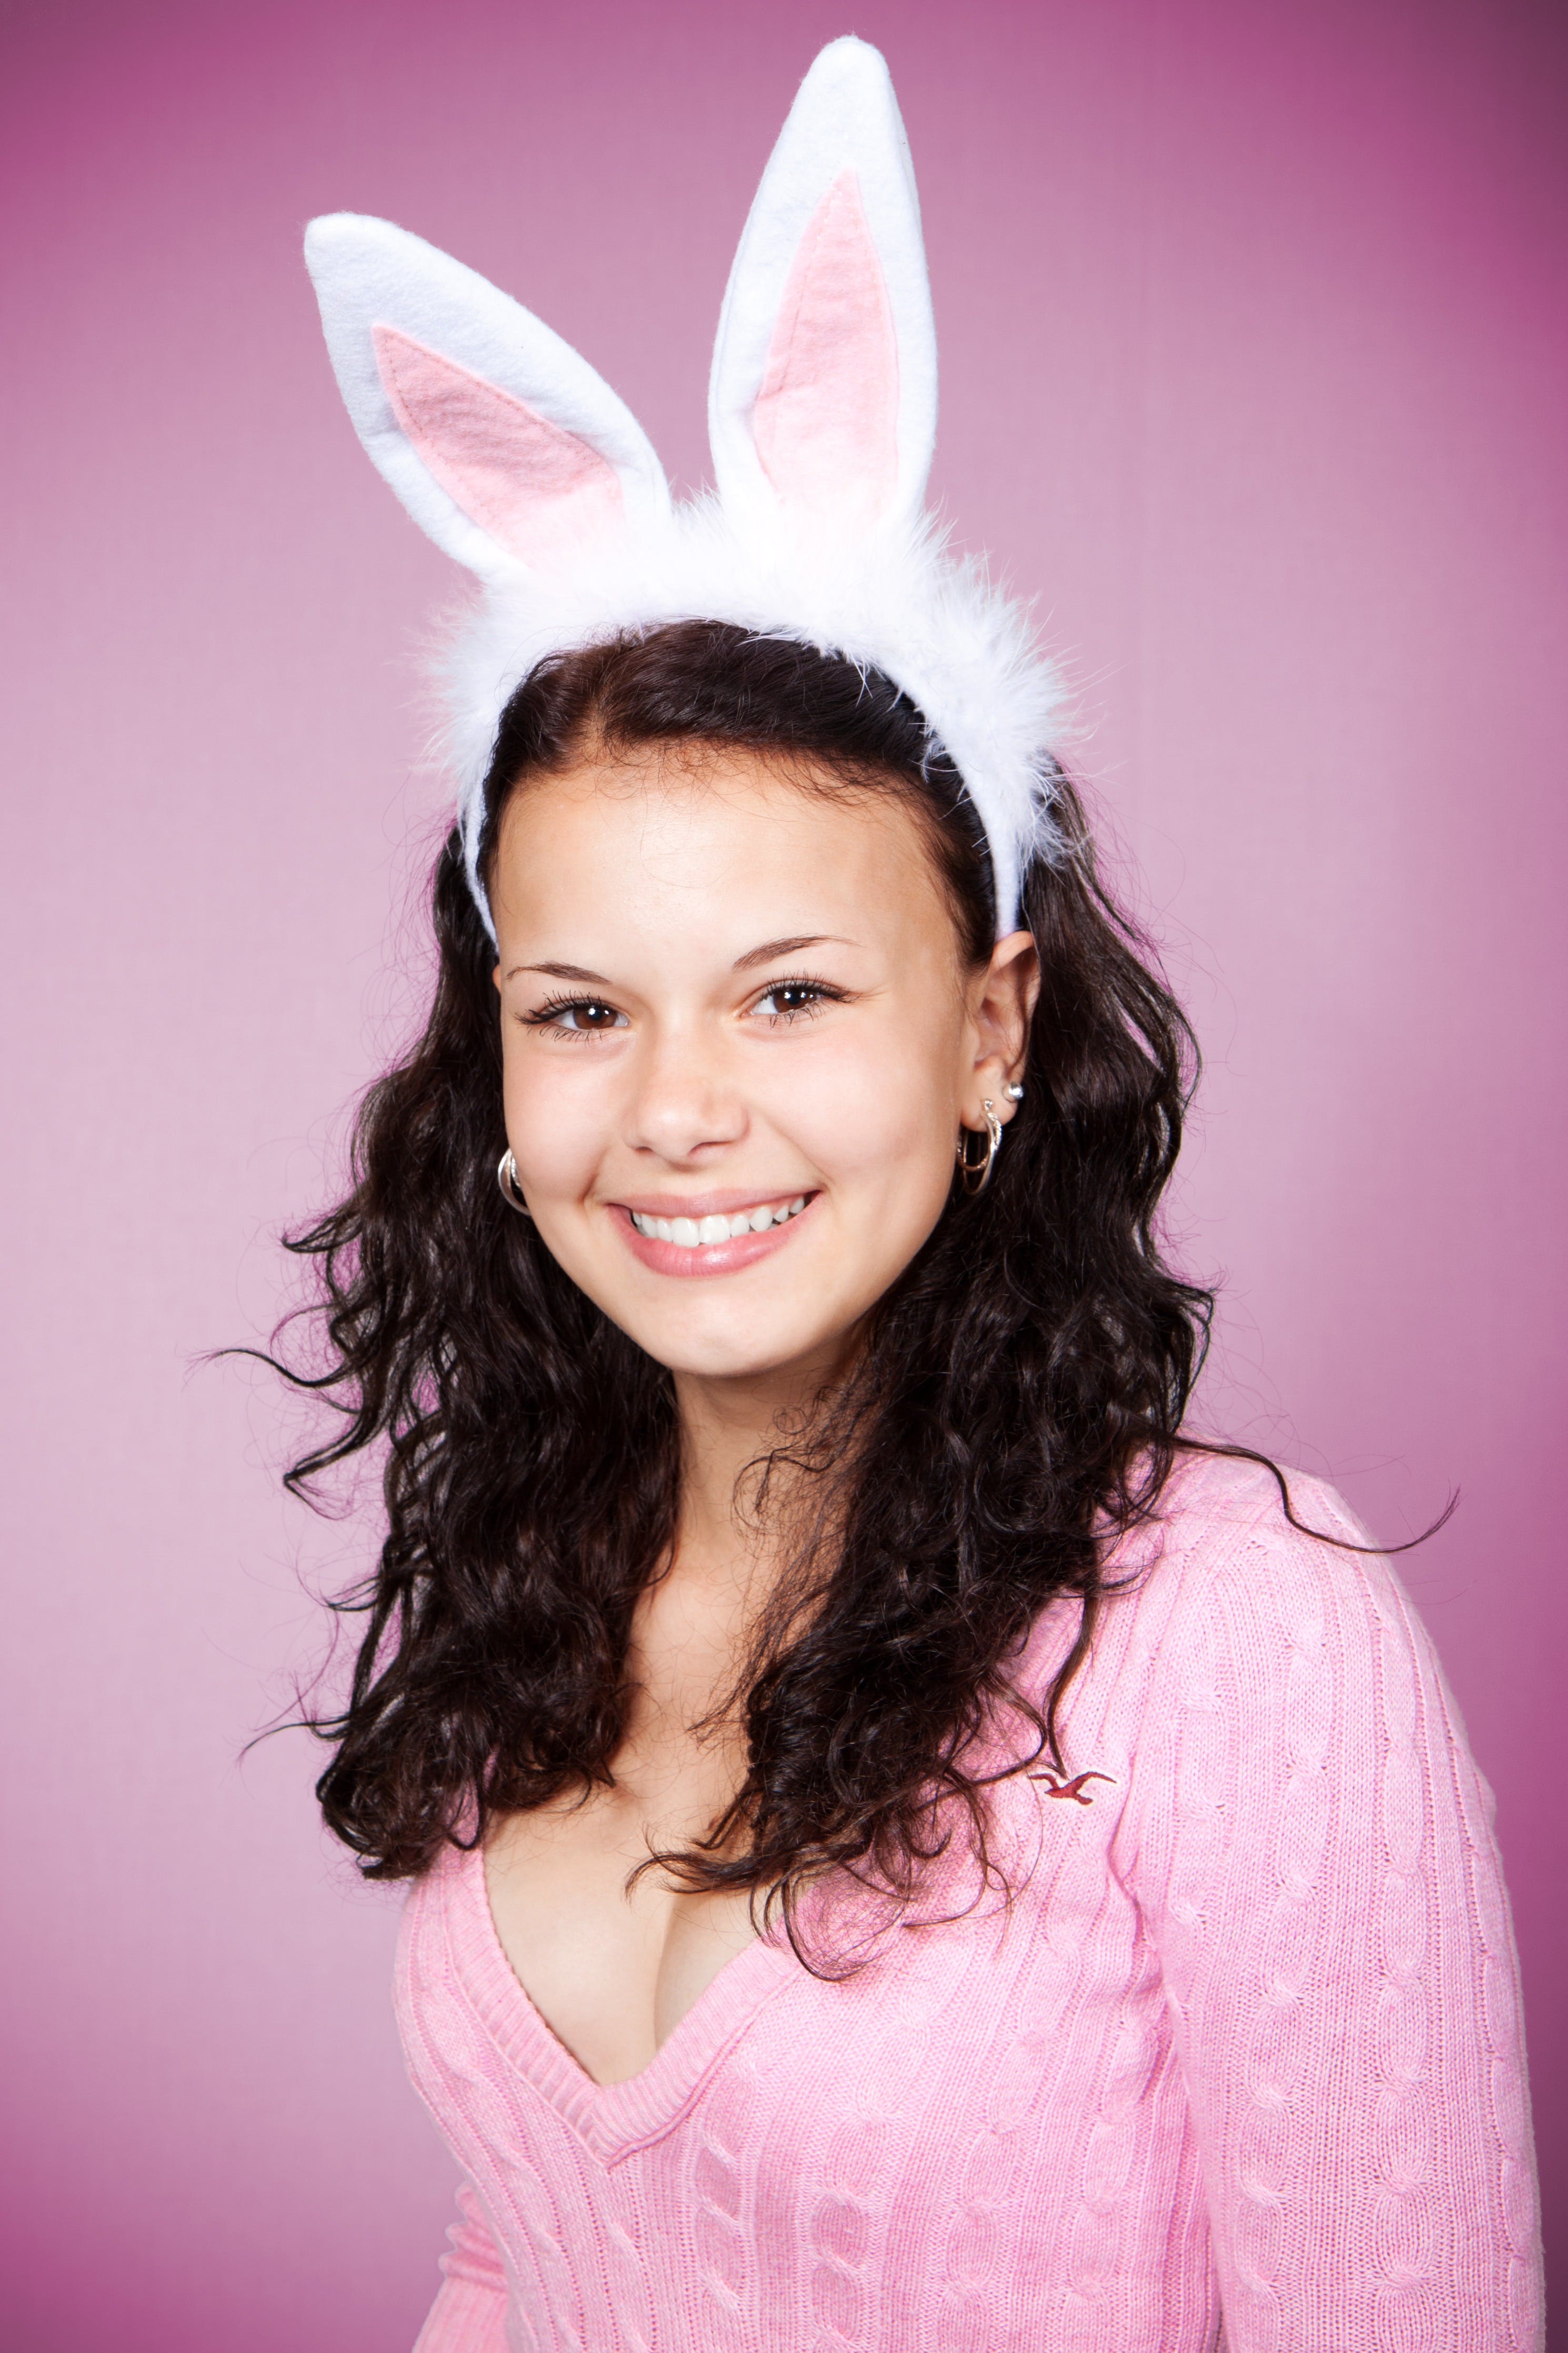 Woman in Pink Sweater Wearing Bunny Headband Smiling Against Pink Background